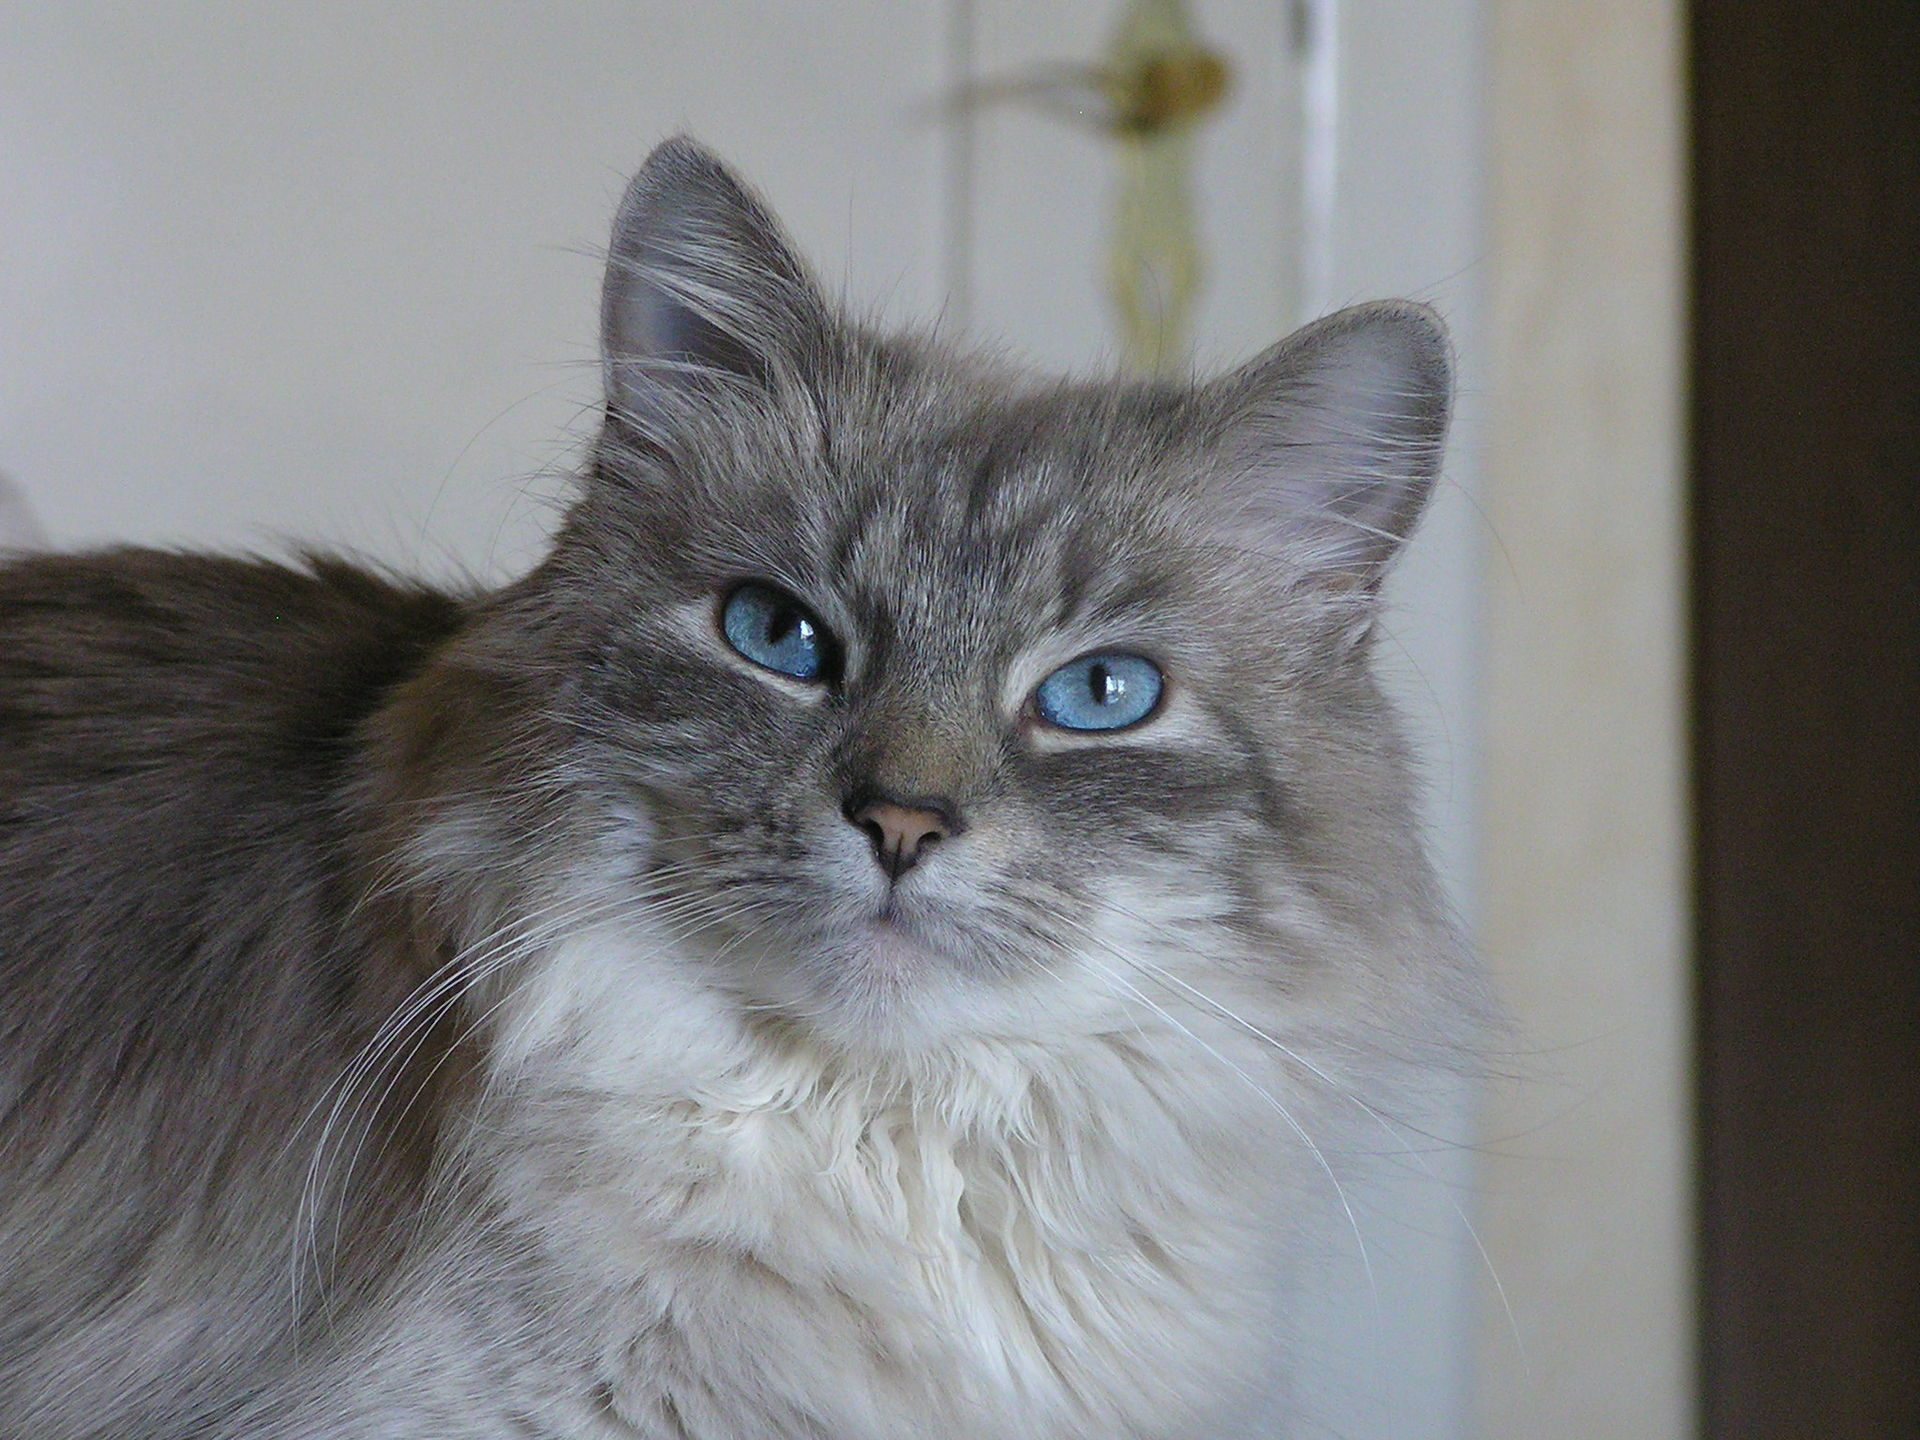 Free picture cute cat blue eyes animal gray cat portrait